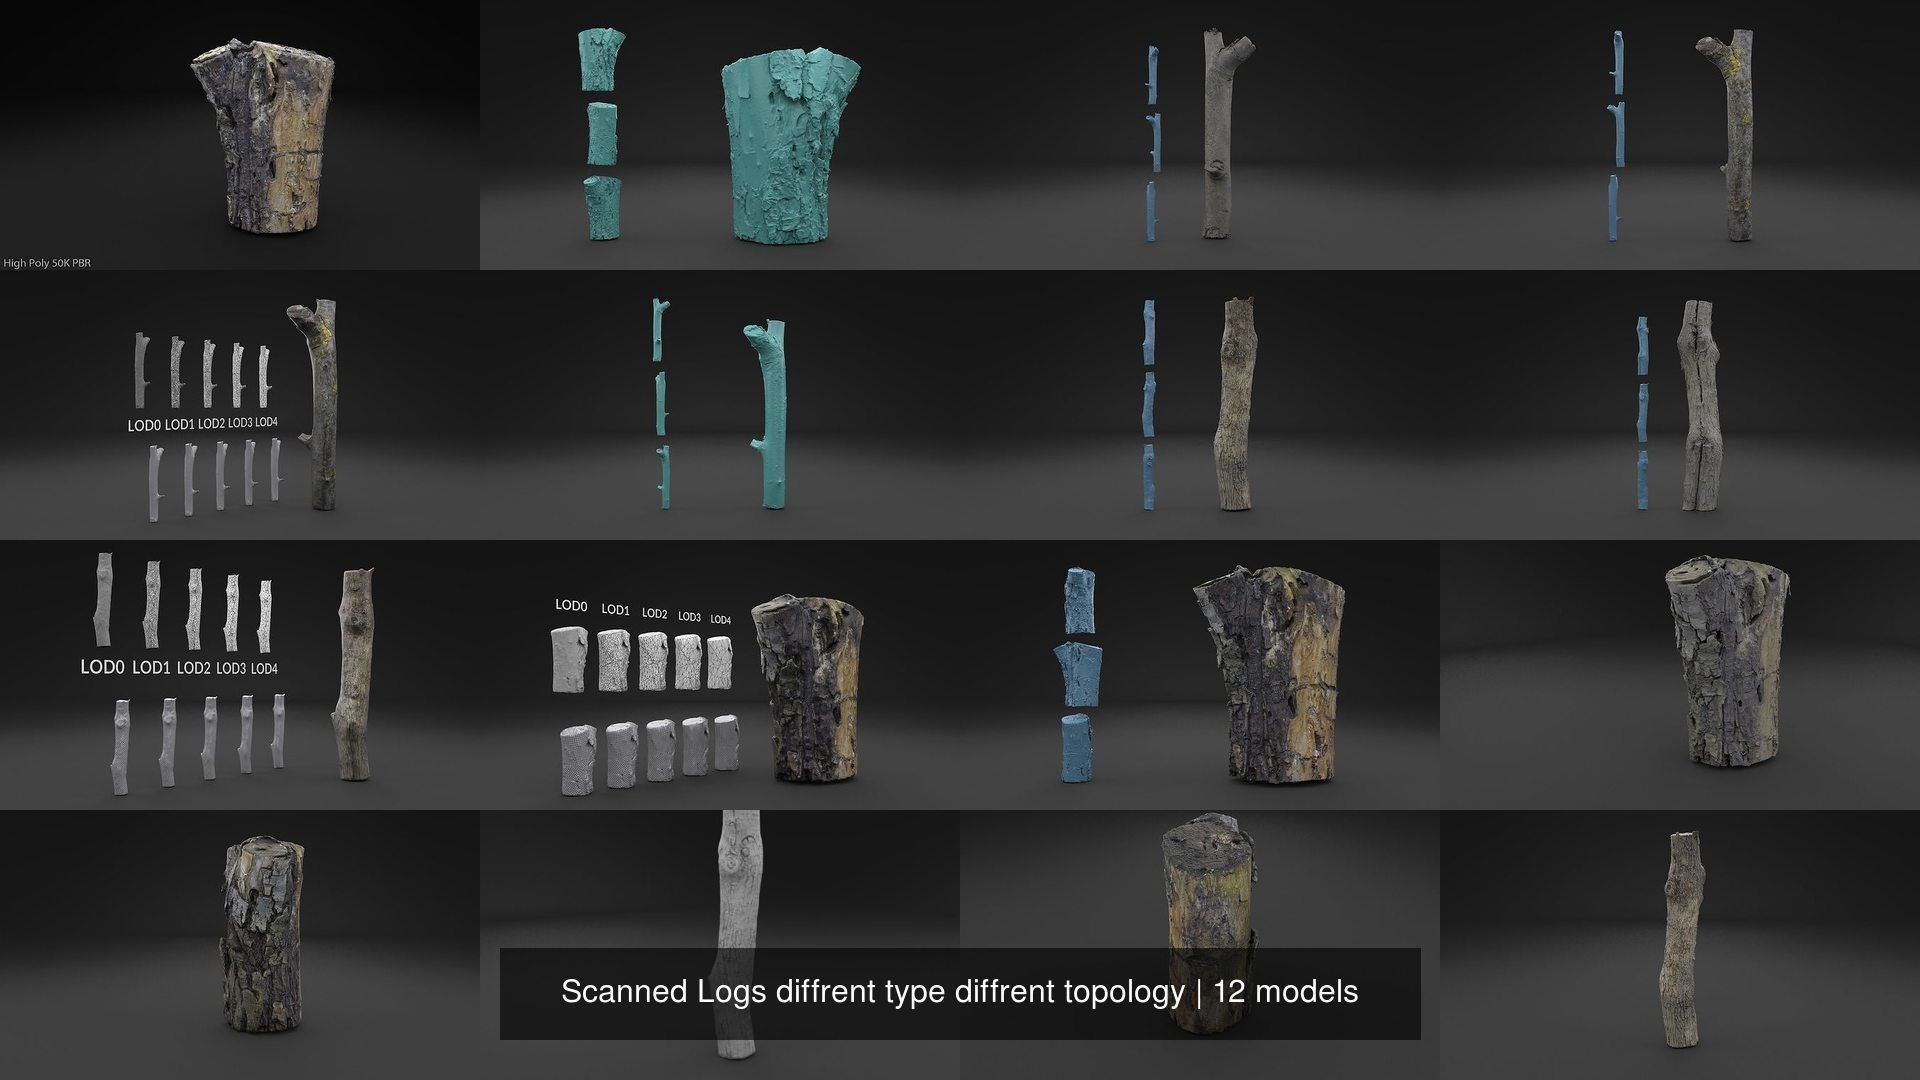 Scanned Logs diffrent type diffrent topology